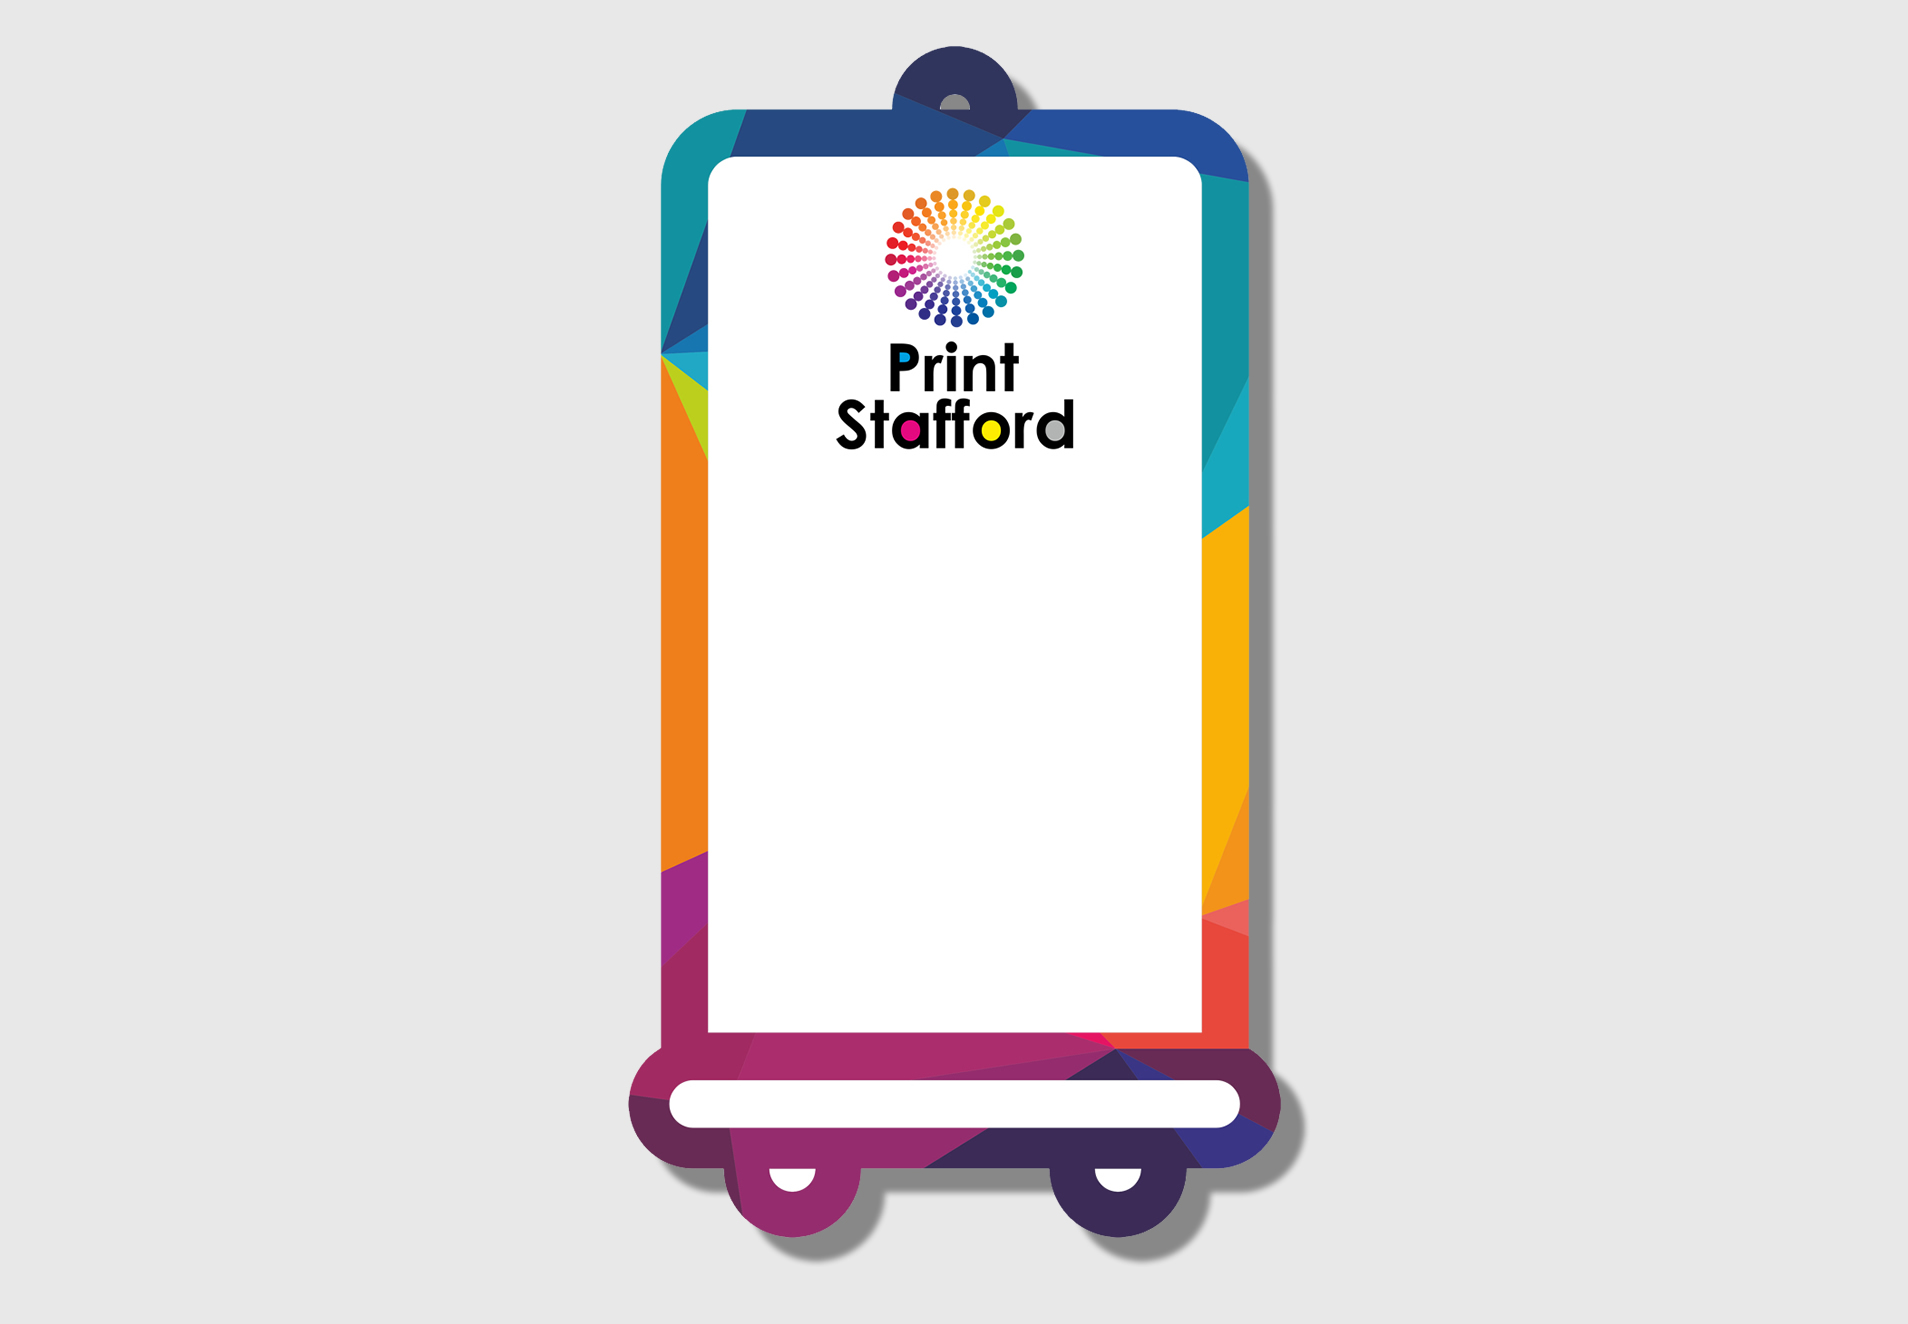 Pull up banner clipart vector library stock Roller Banners printing Staffordshire | Print Stafford vector library stock